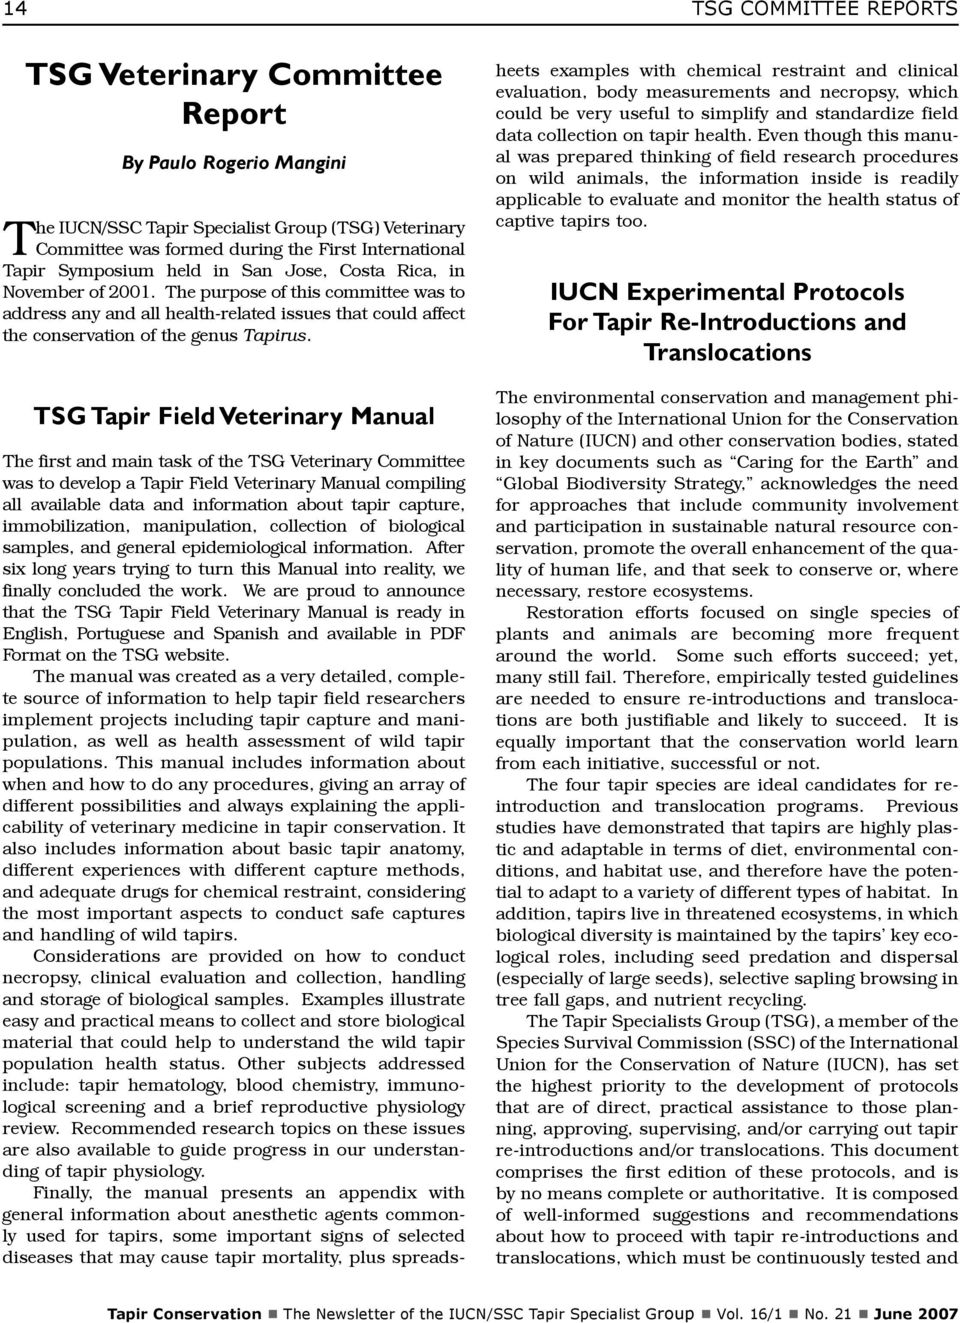 TSG Tapir Field Veterinary Manual TSG COMMITTEE REPORTS The first and main task of the TSG Veterinary Committee was to develop a Tapir Field Veterinary Manual compiling all available data and